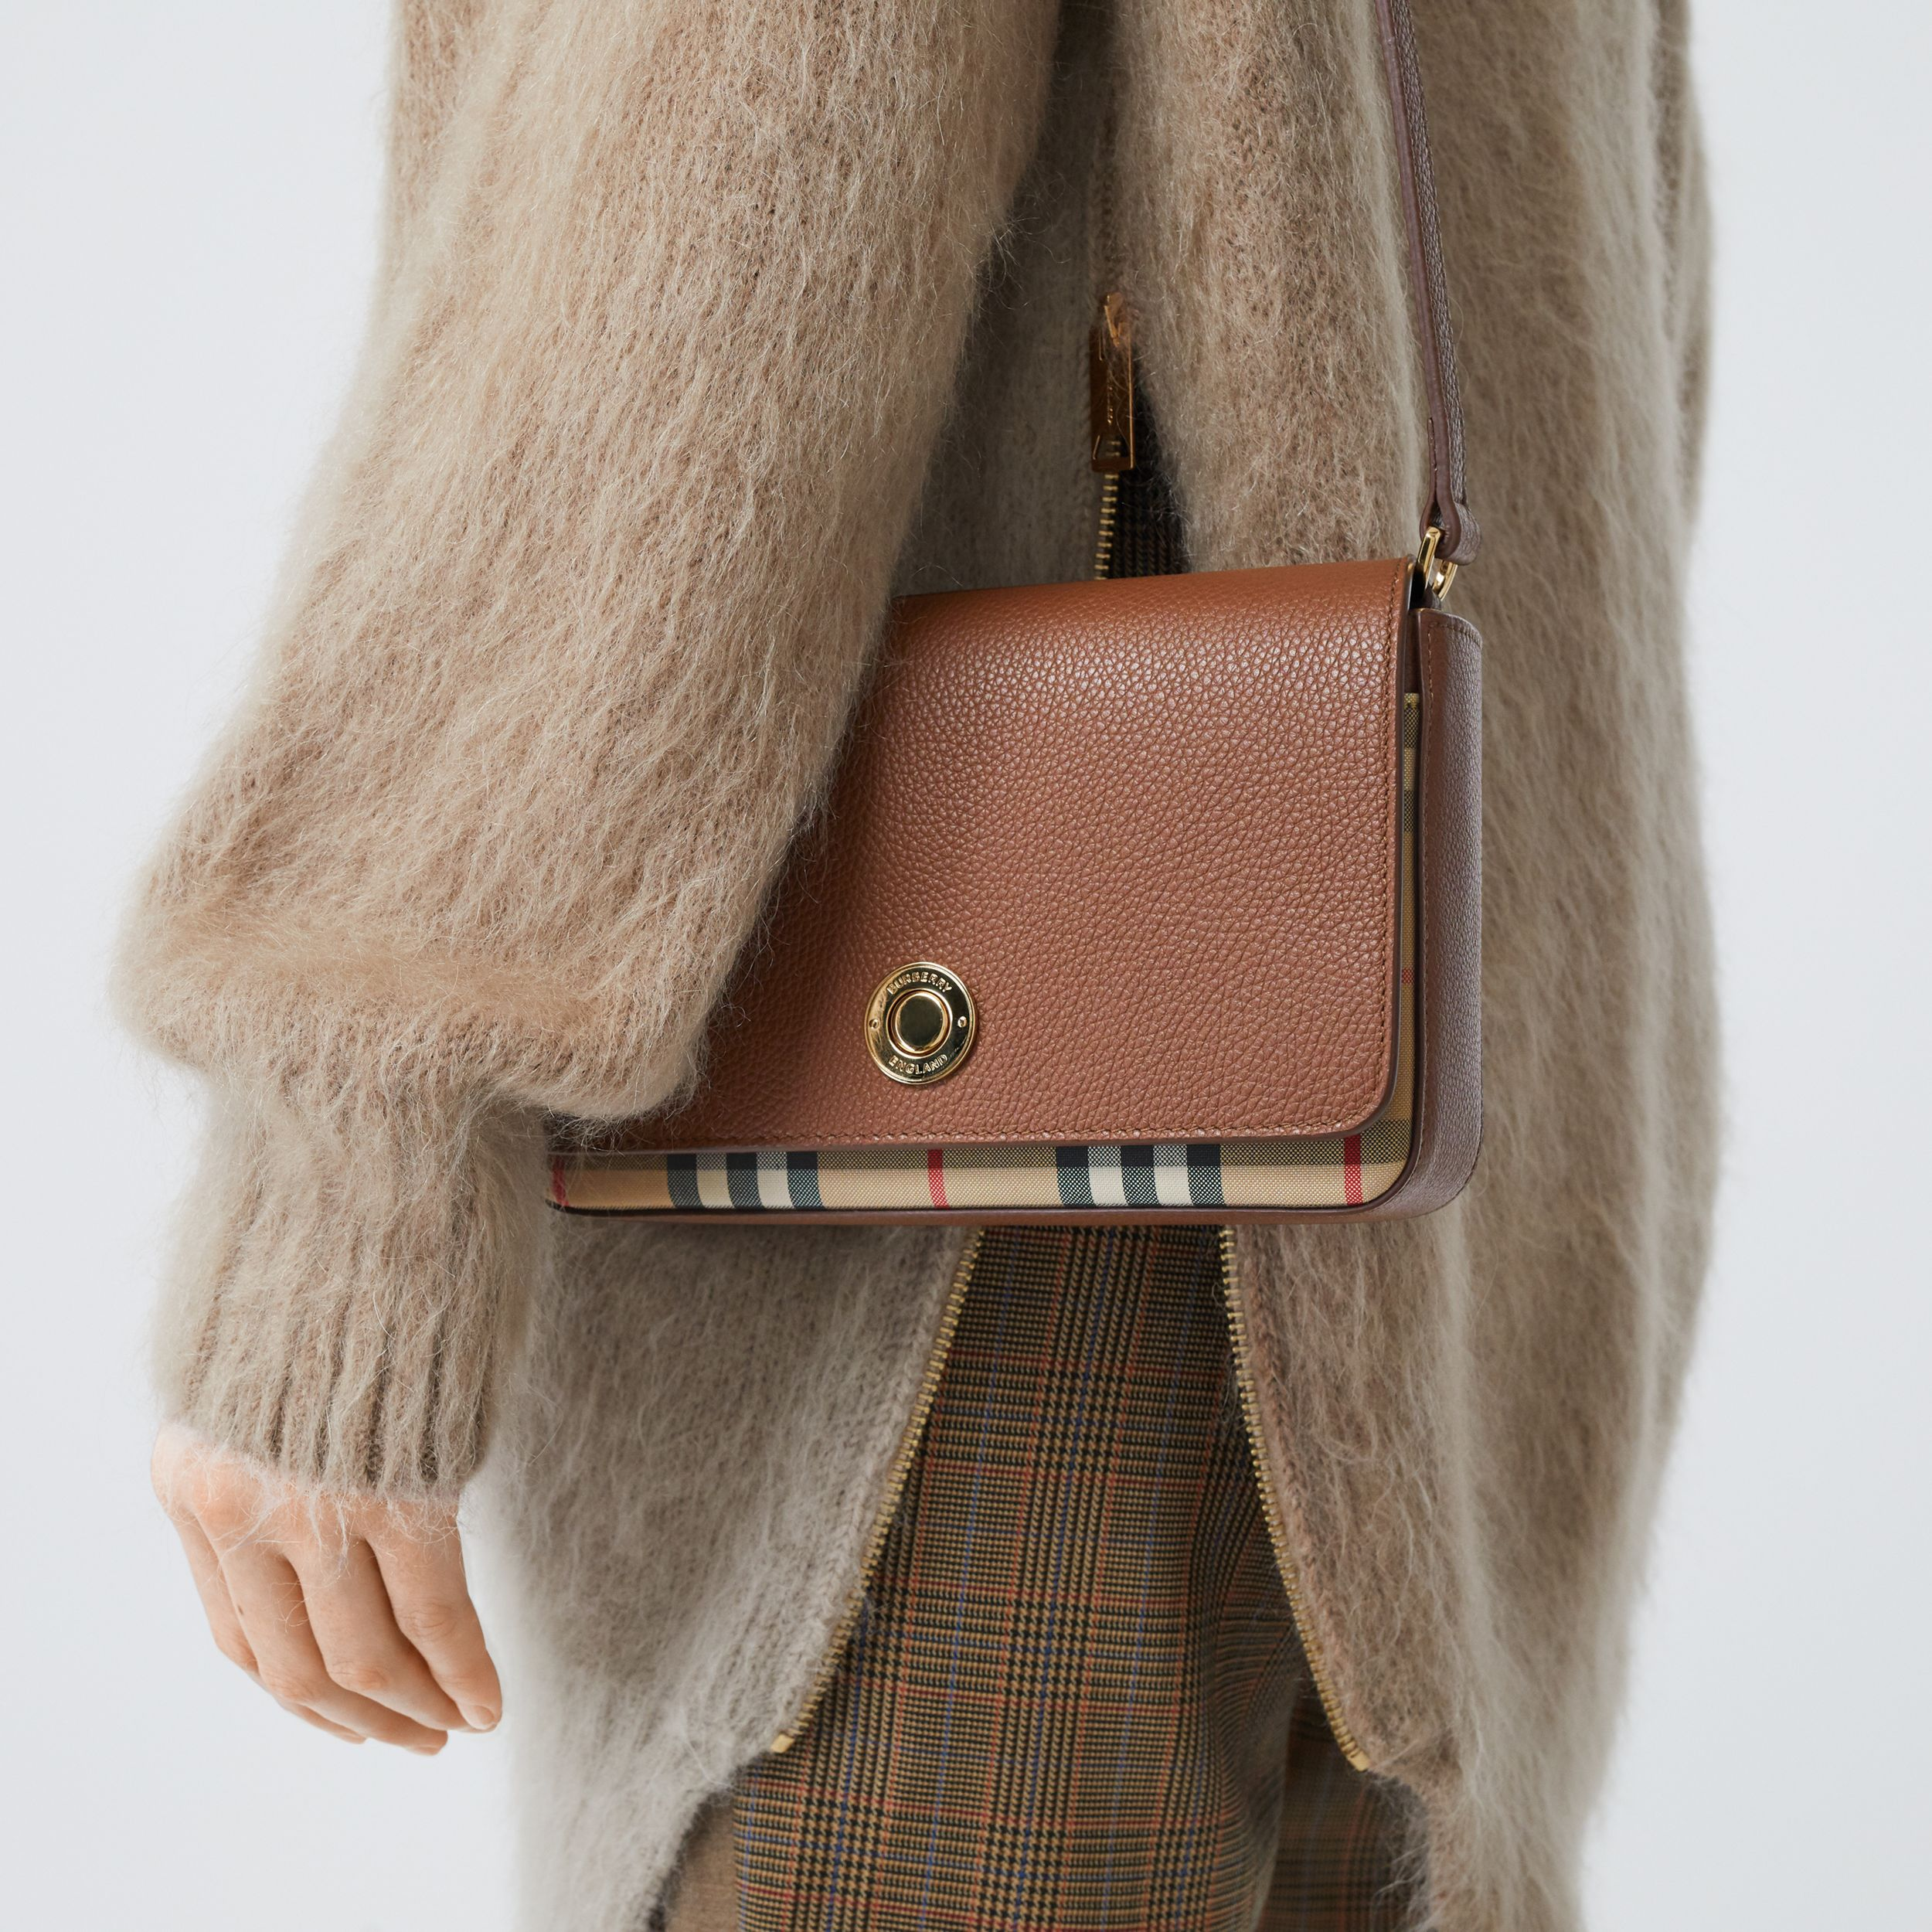 Small Leather and Vintage Check Crossbody Bag in Tan - Women | Burberry Australia - 3